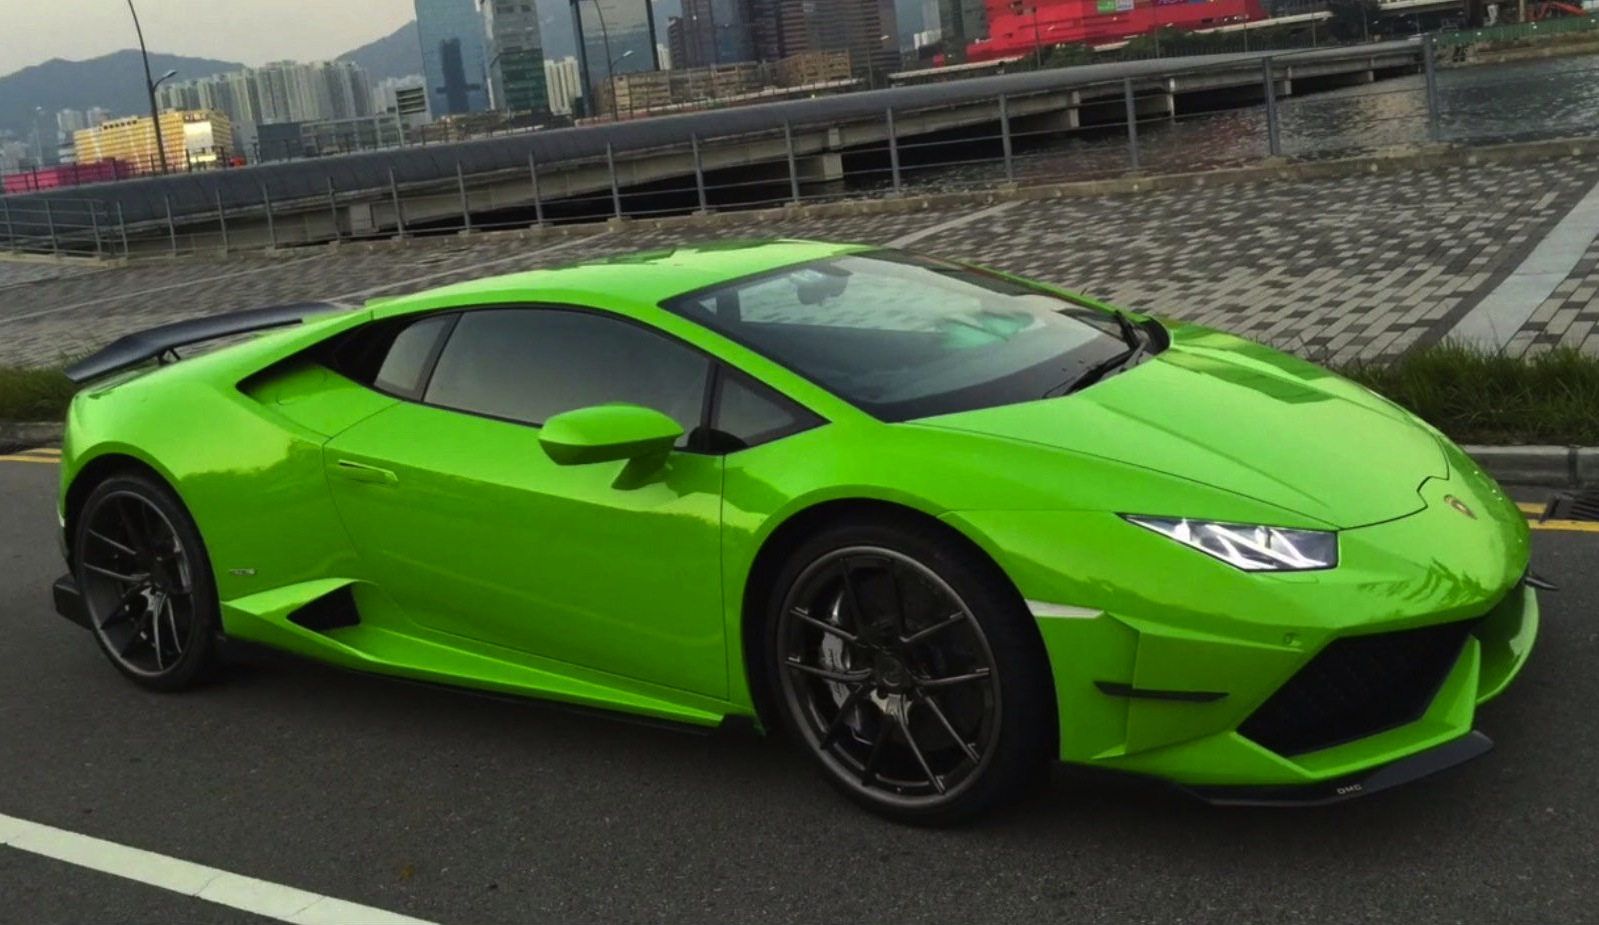 Dmc Creates First Tuner Bodykit For The Lamborghini